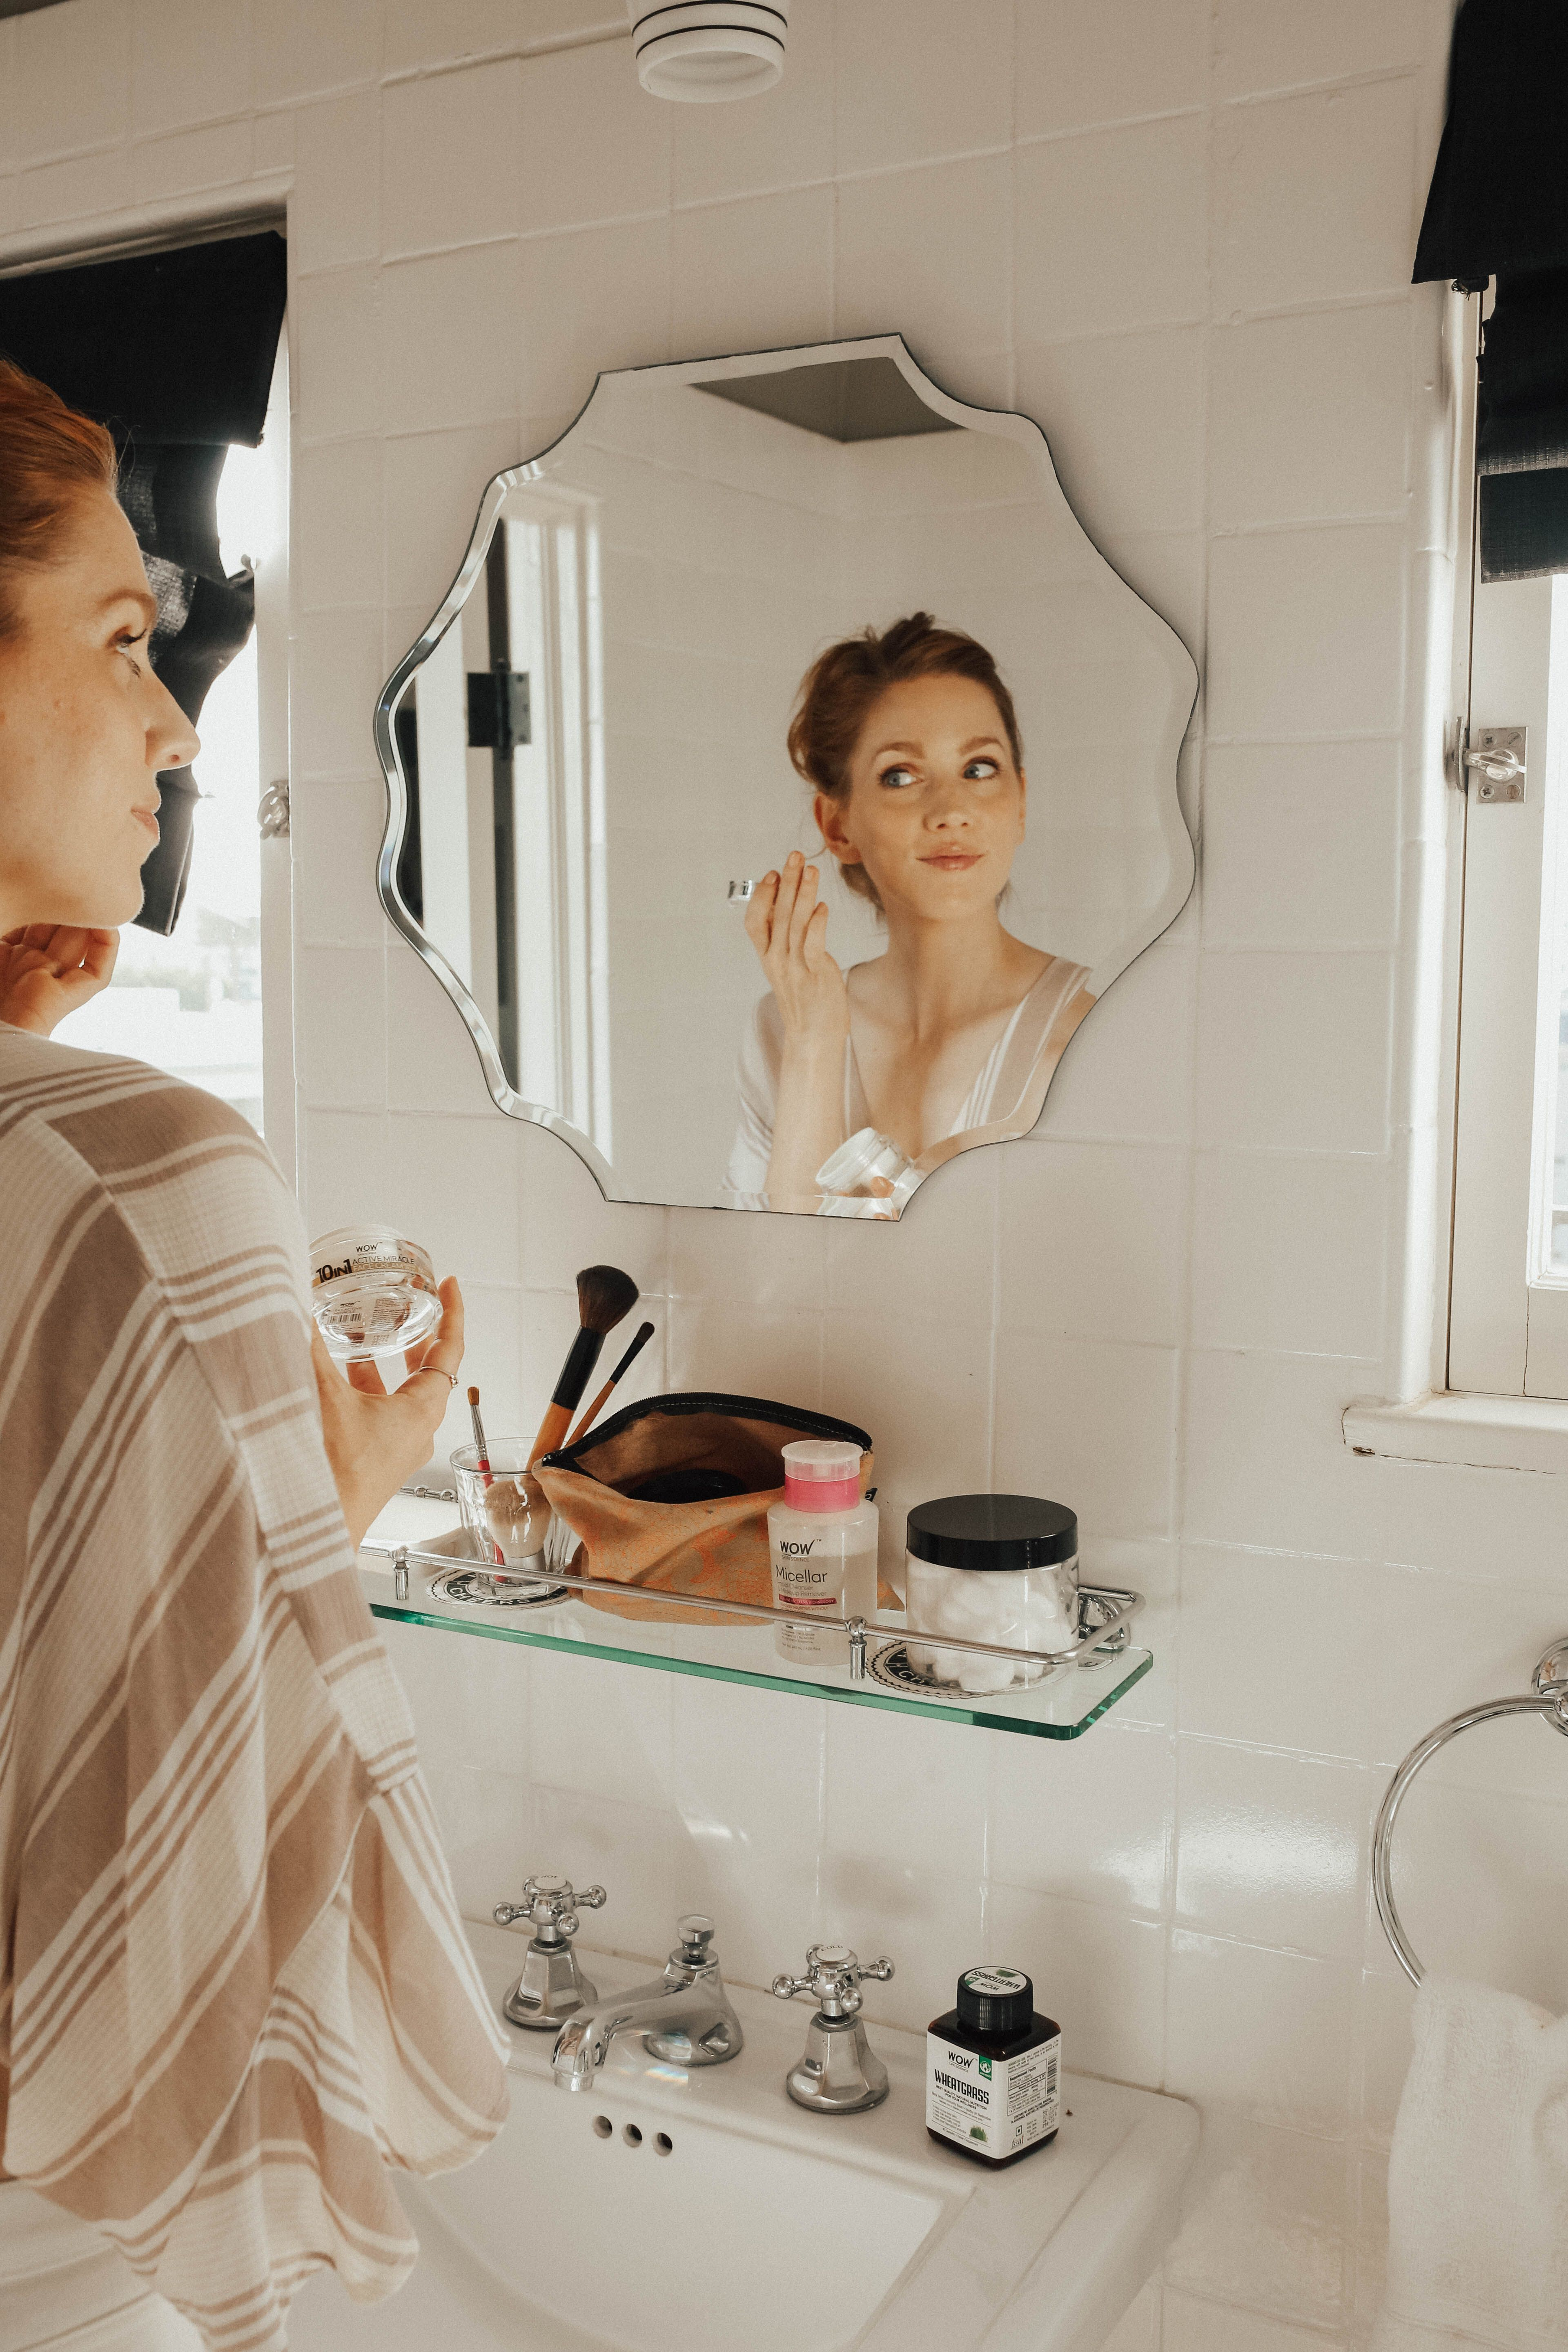 Pin on Micellar Water Facial Cleanser & Makeup Remover